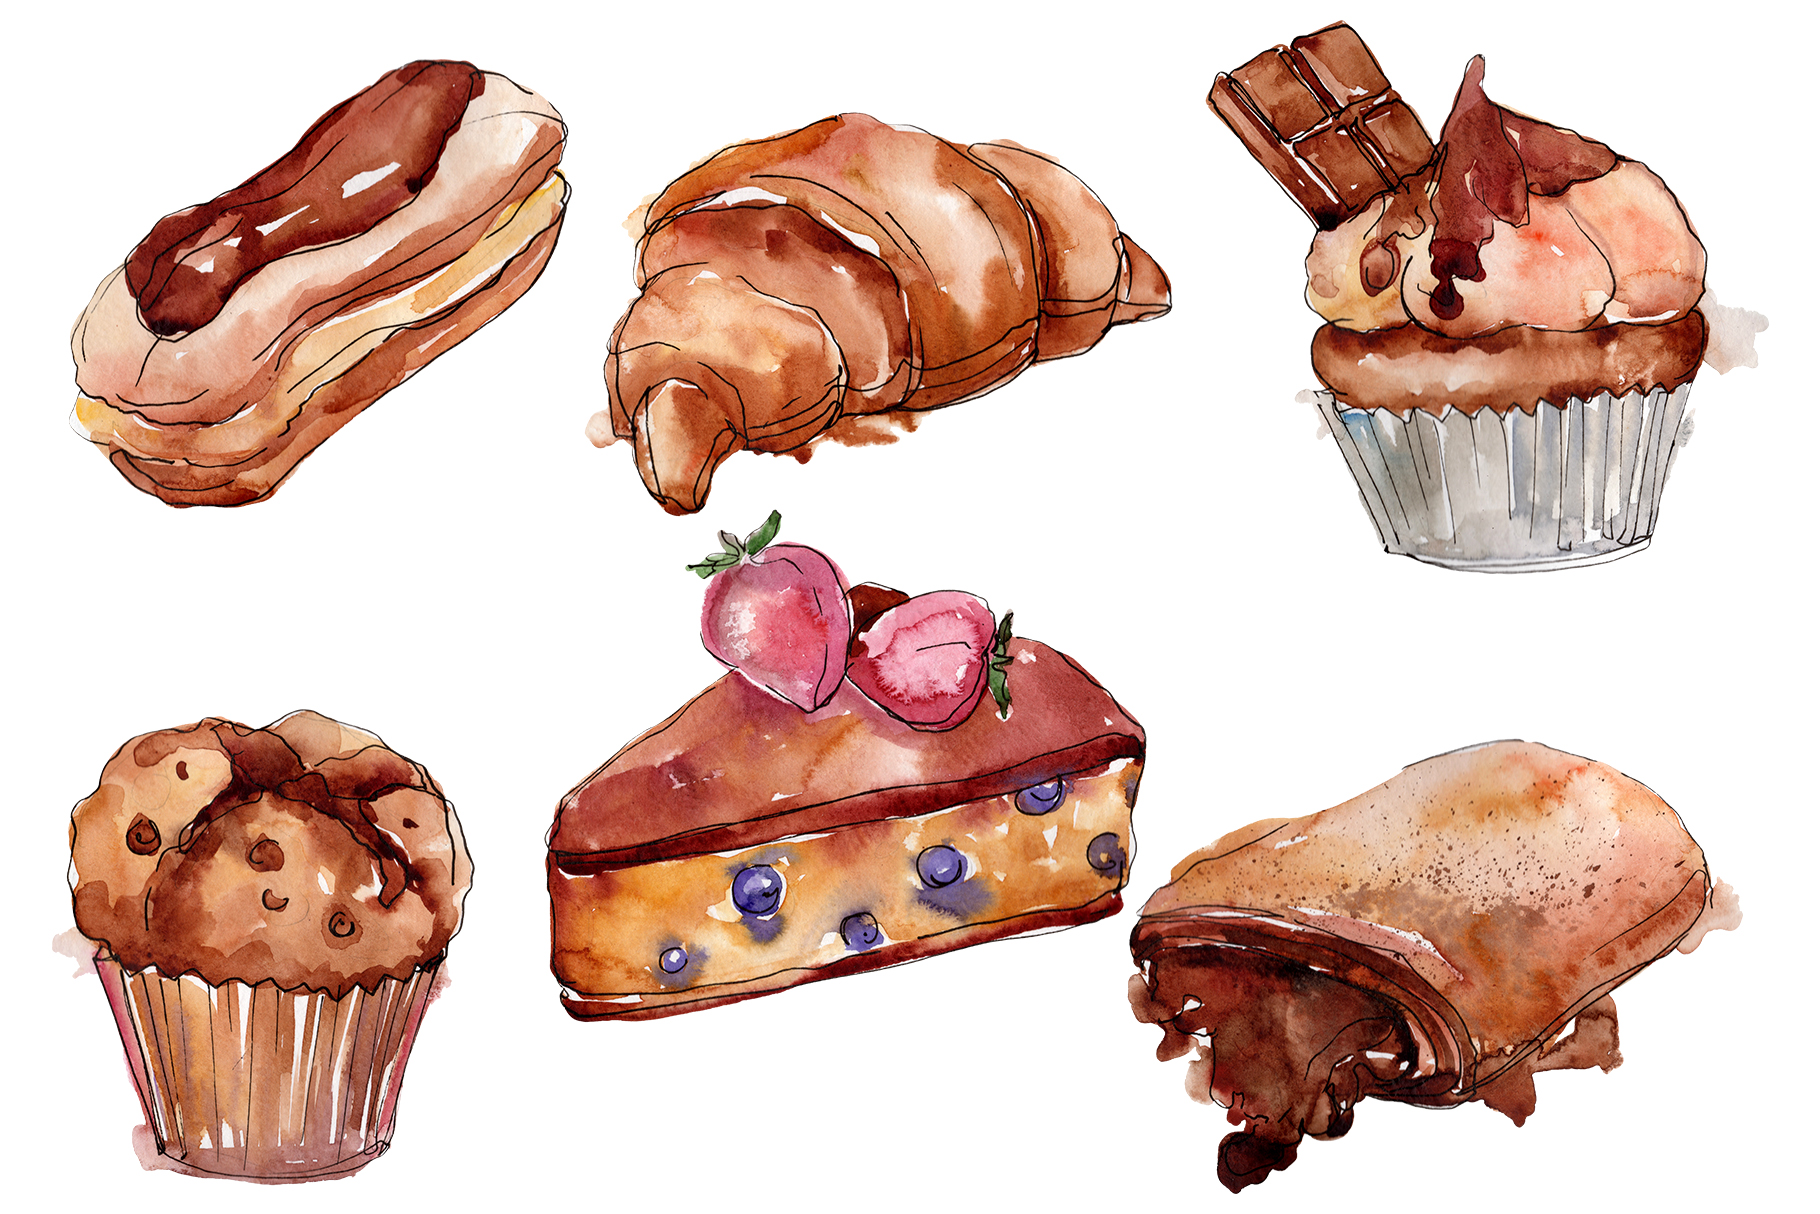 Dessert Cake with Chocolate and Croissant Watercolor png example image 1